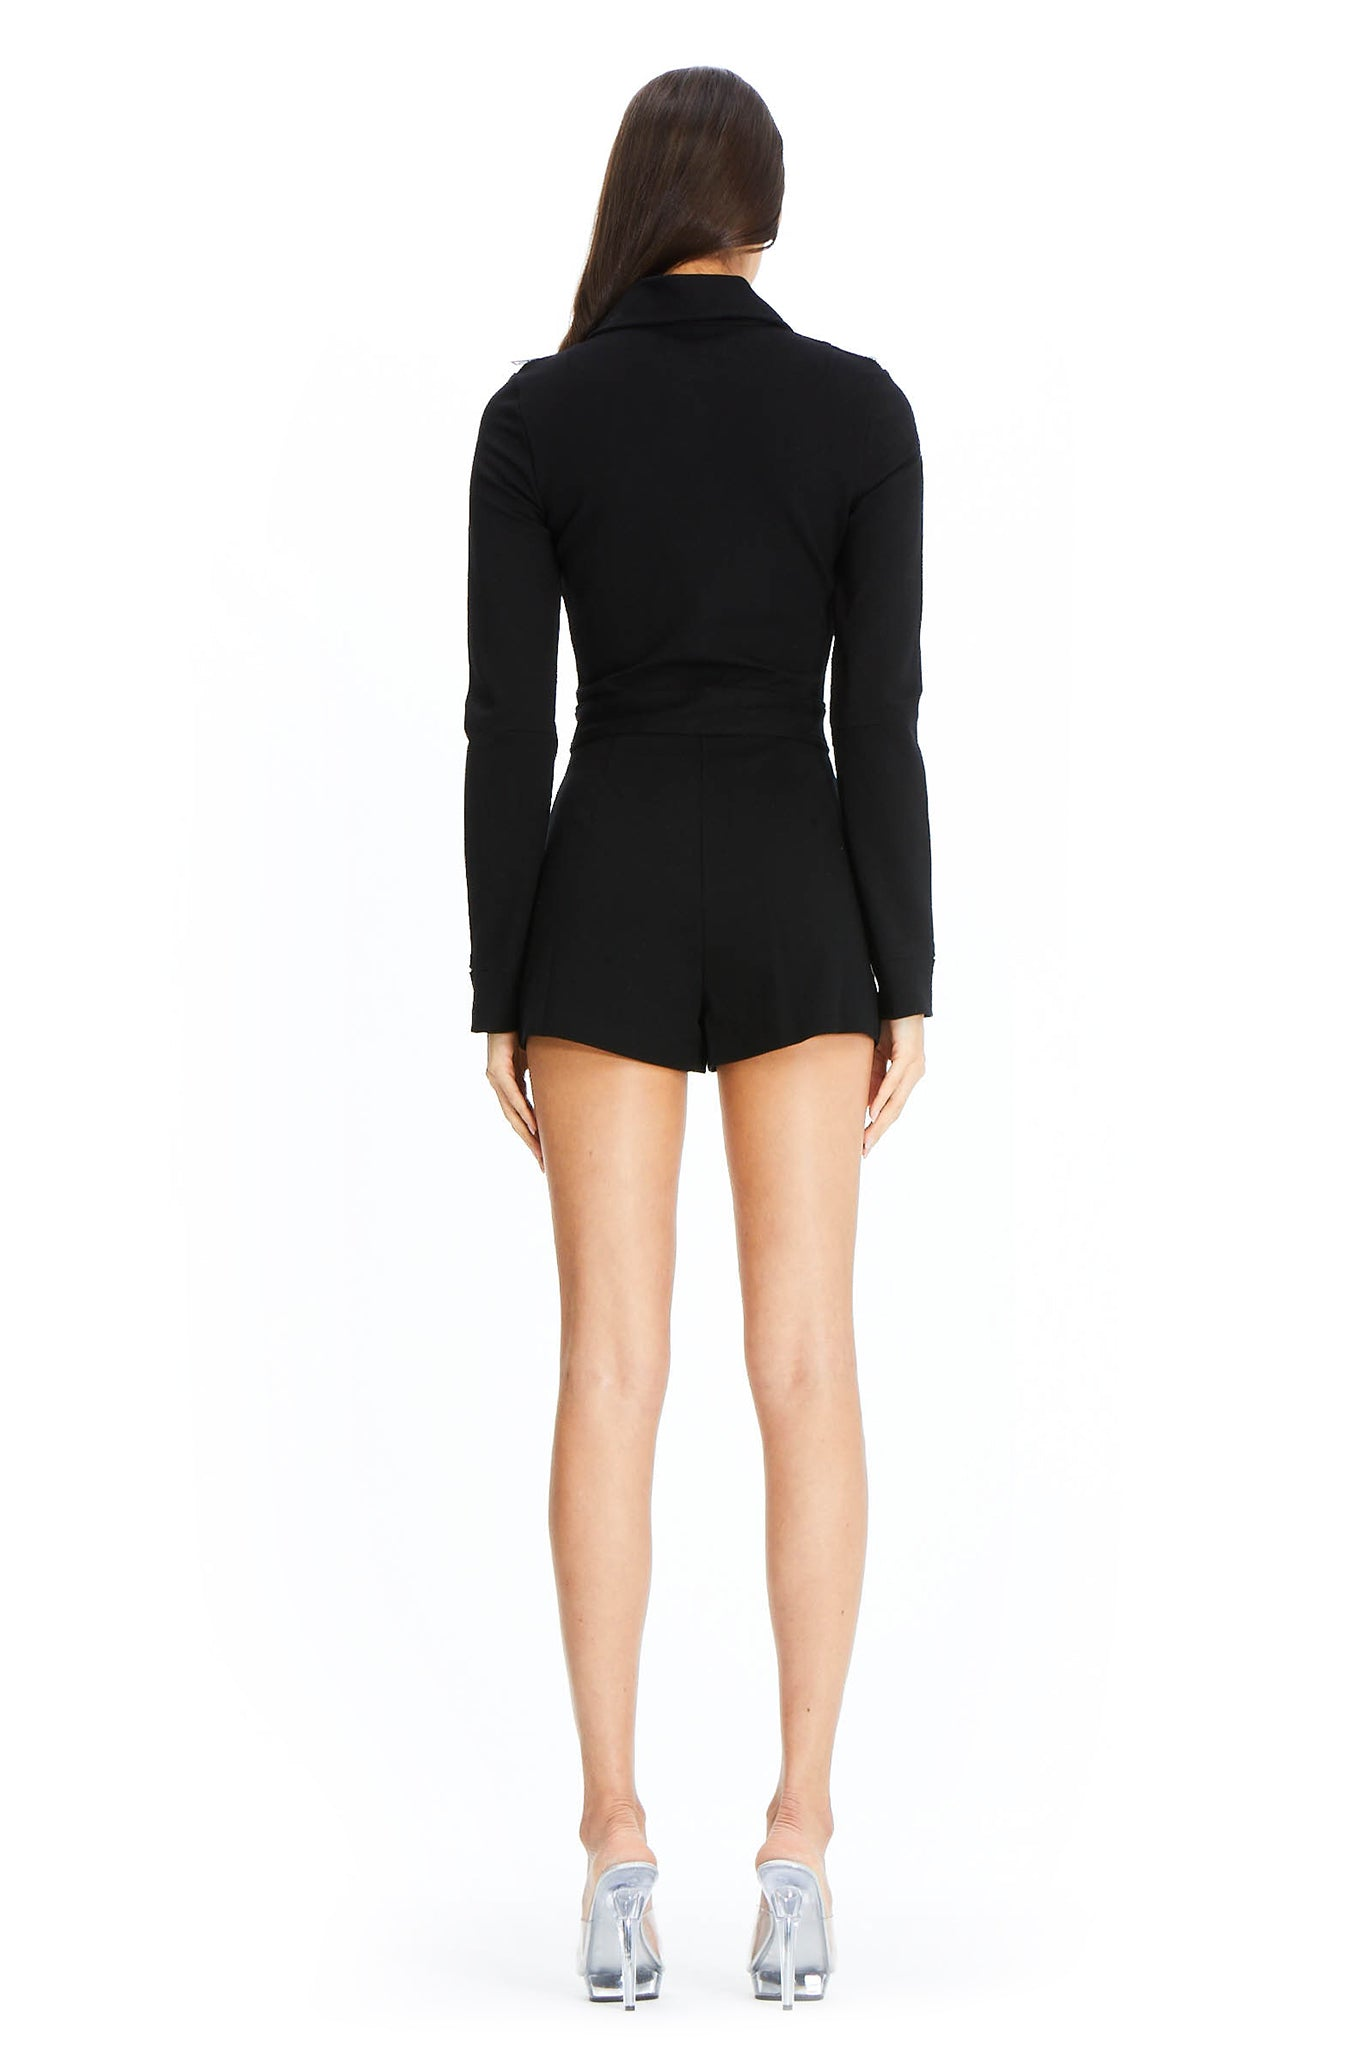 ROXY PLAYSUIT